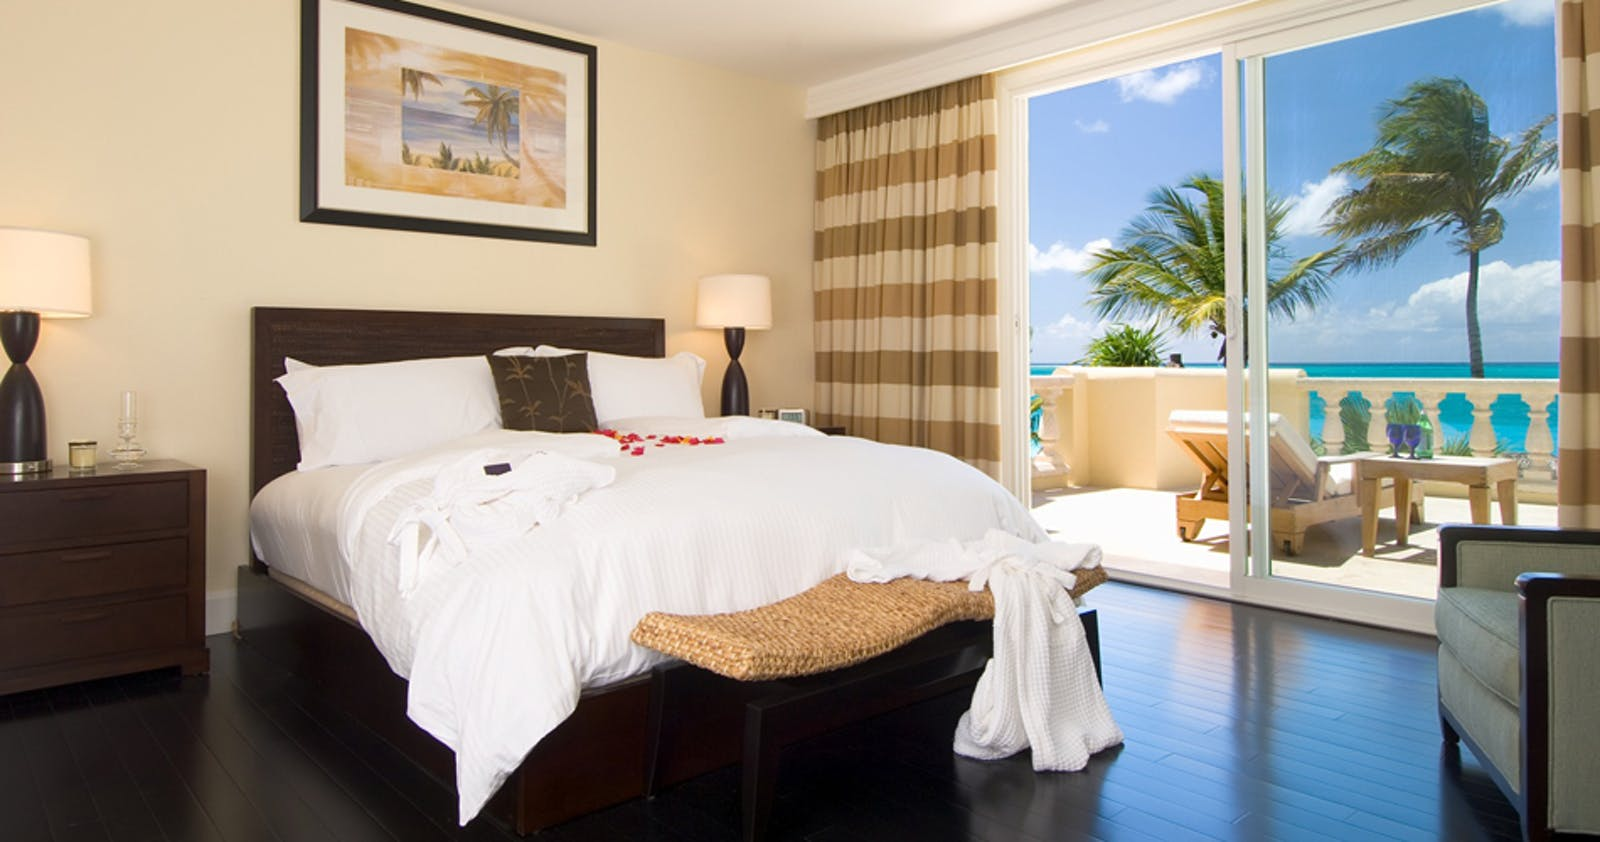 Bedroom at Grace Bay Club, Turks And Caicos